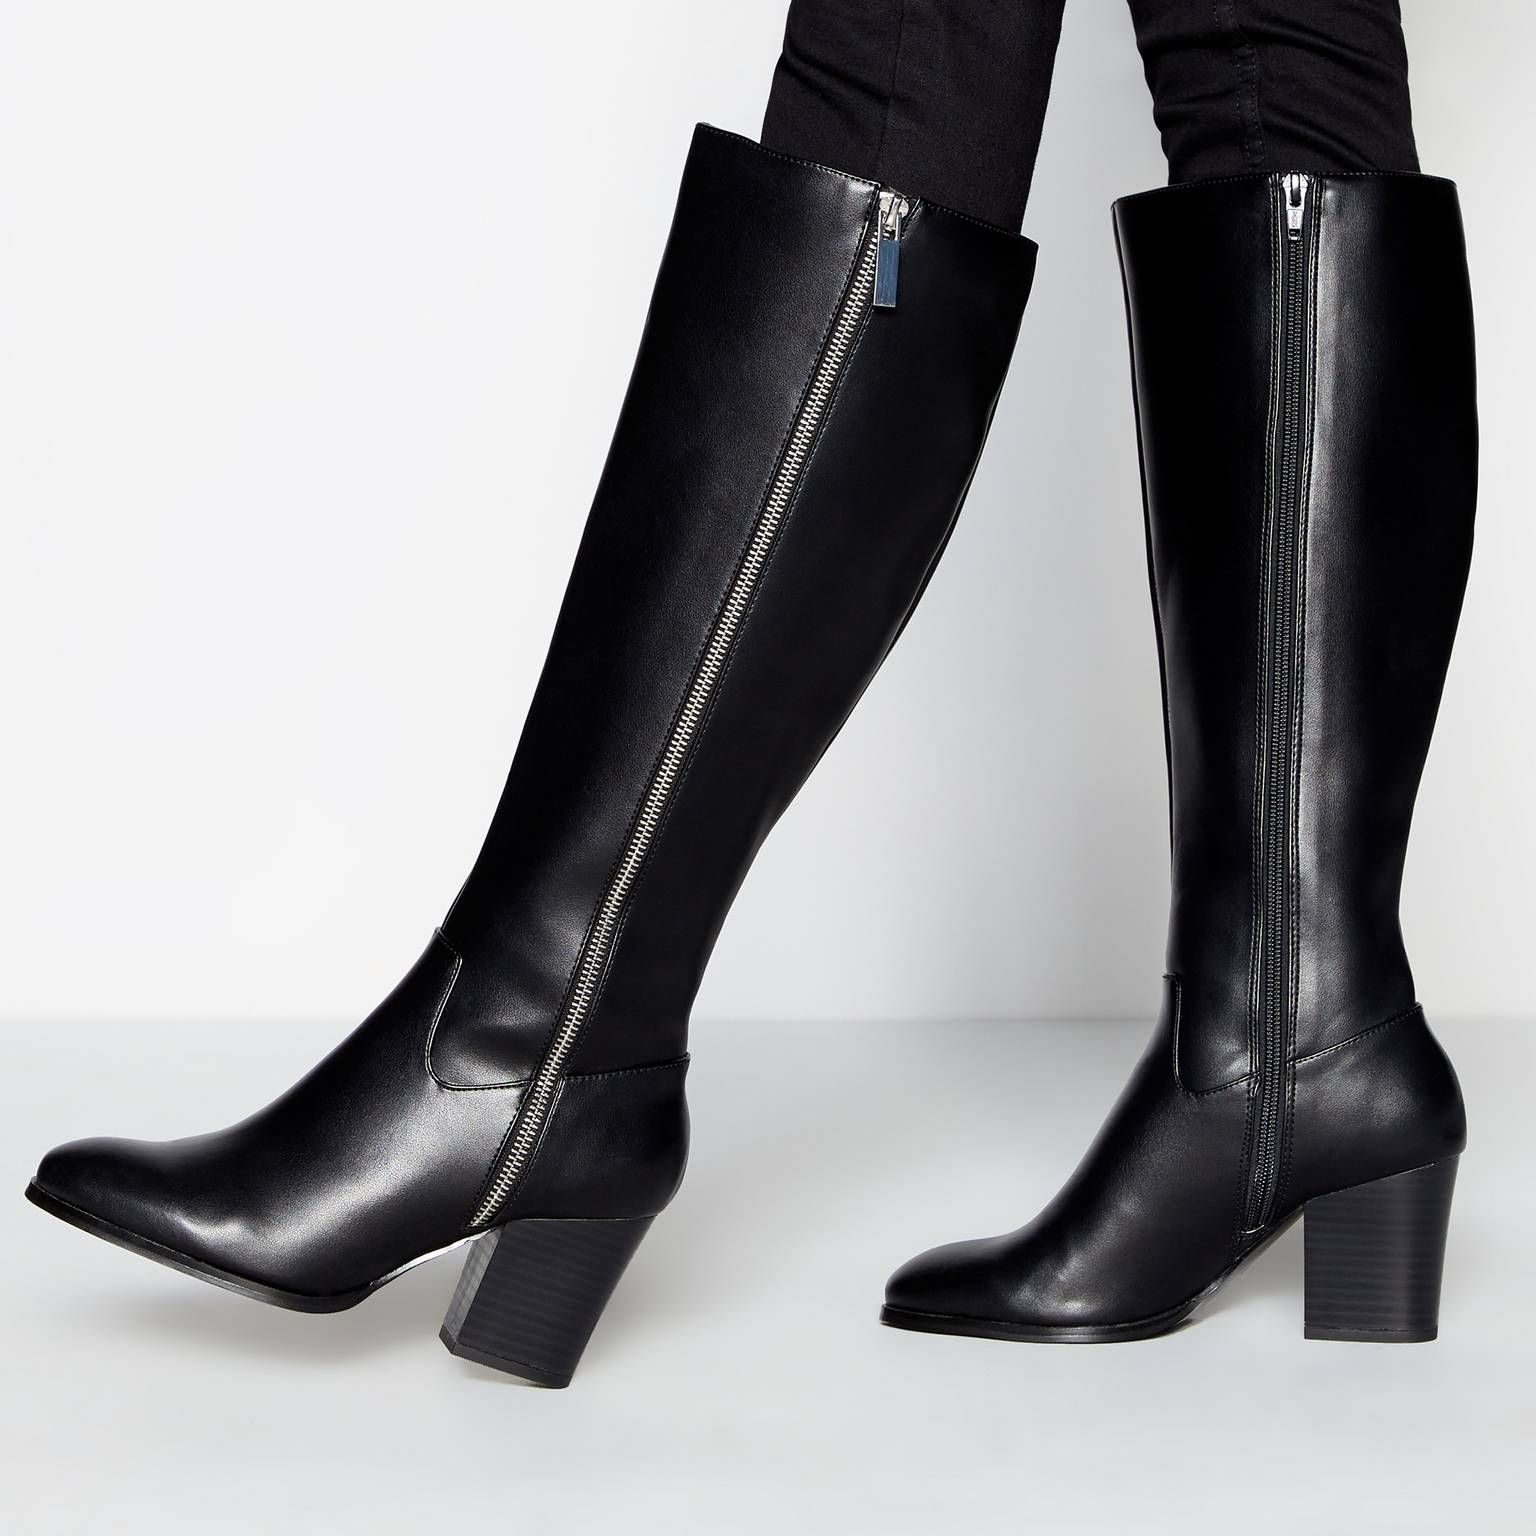 Faith Black 'Mich' High Heel Boots